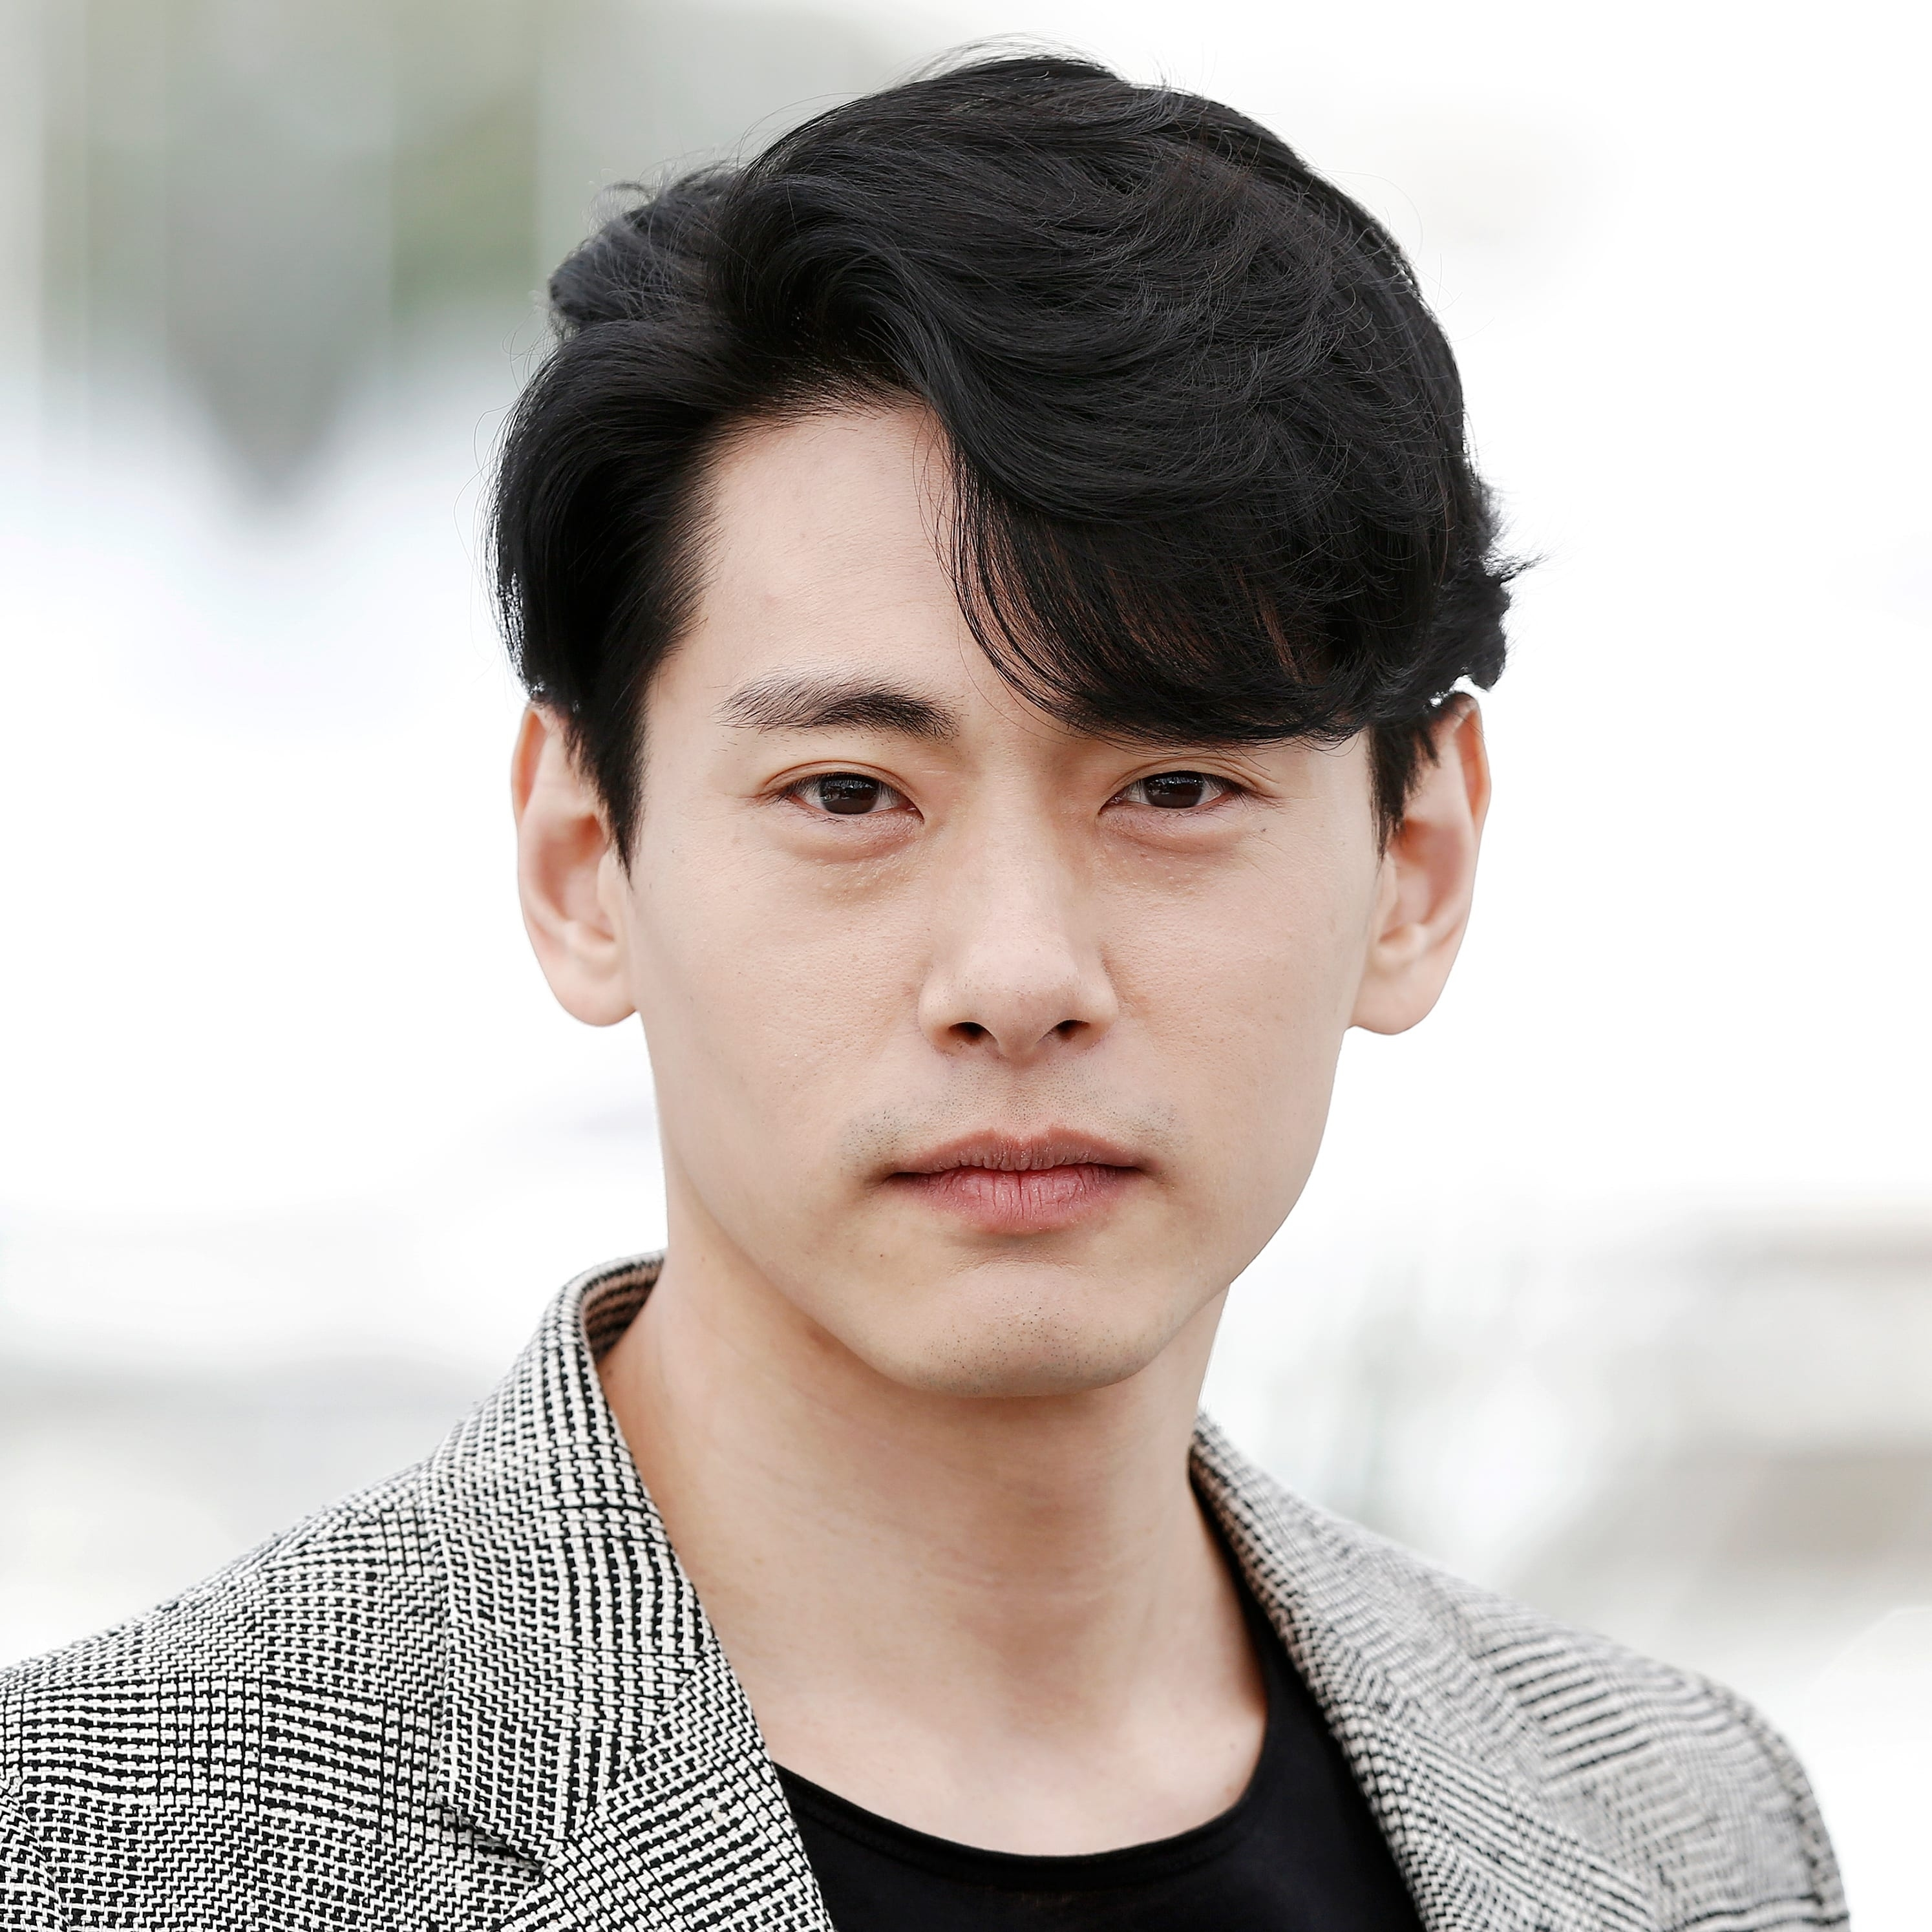 Top 30 Trendy Asian Men Hairstyles 2019 in The greatest Asian Boy Hairstyles 2018